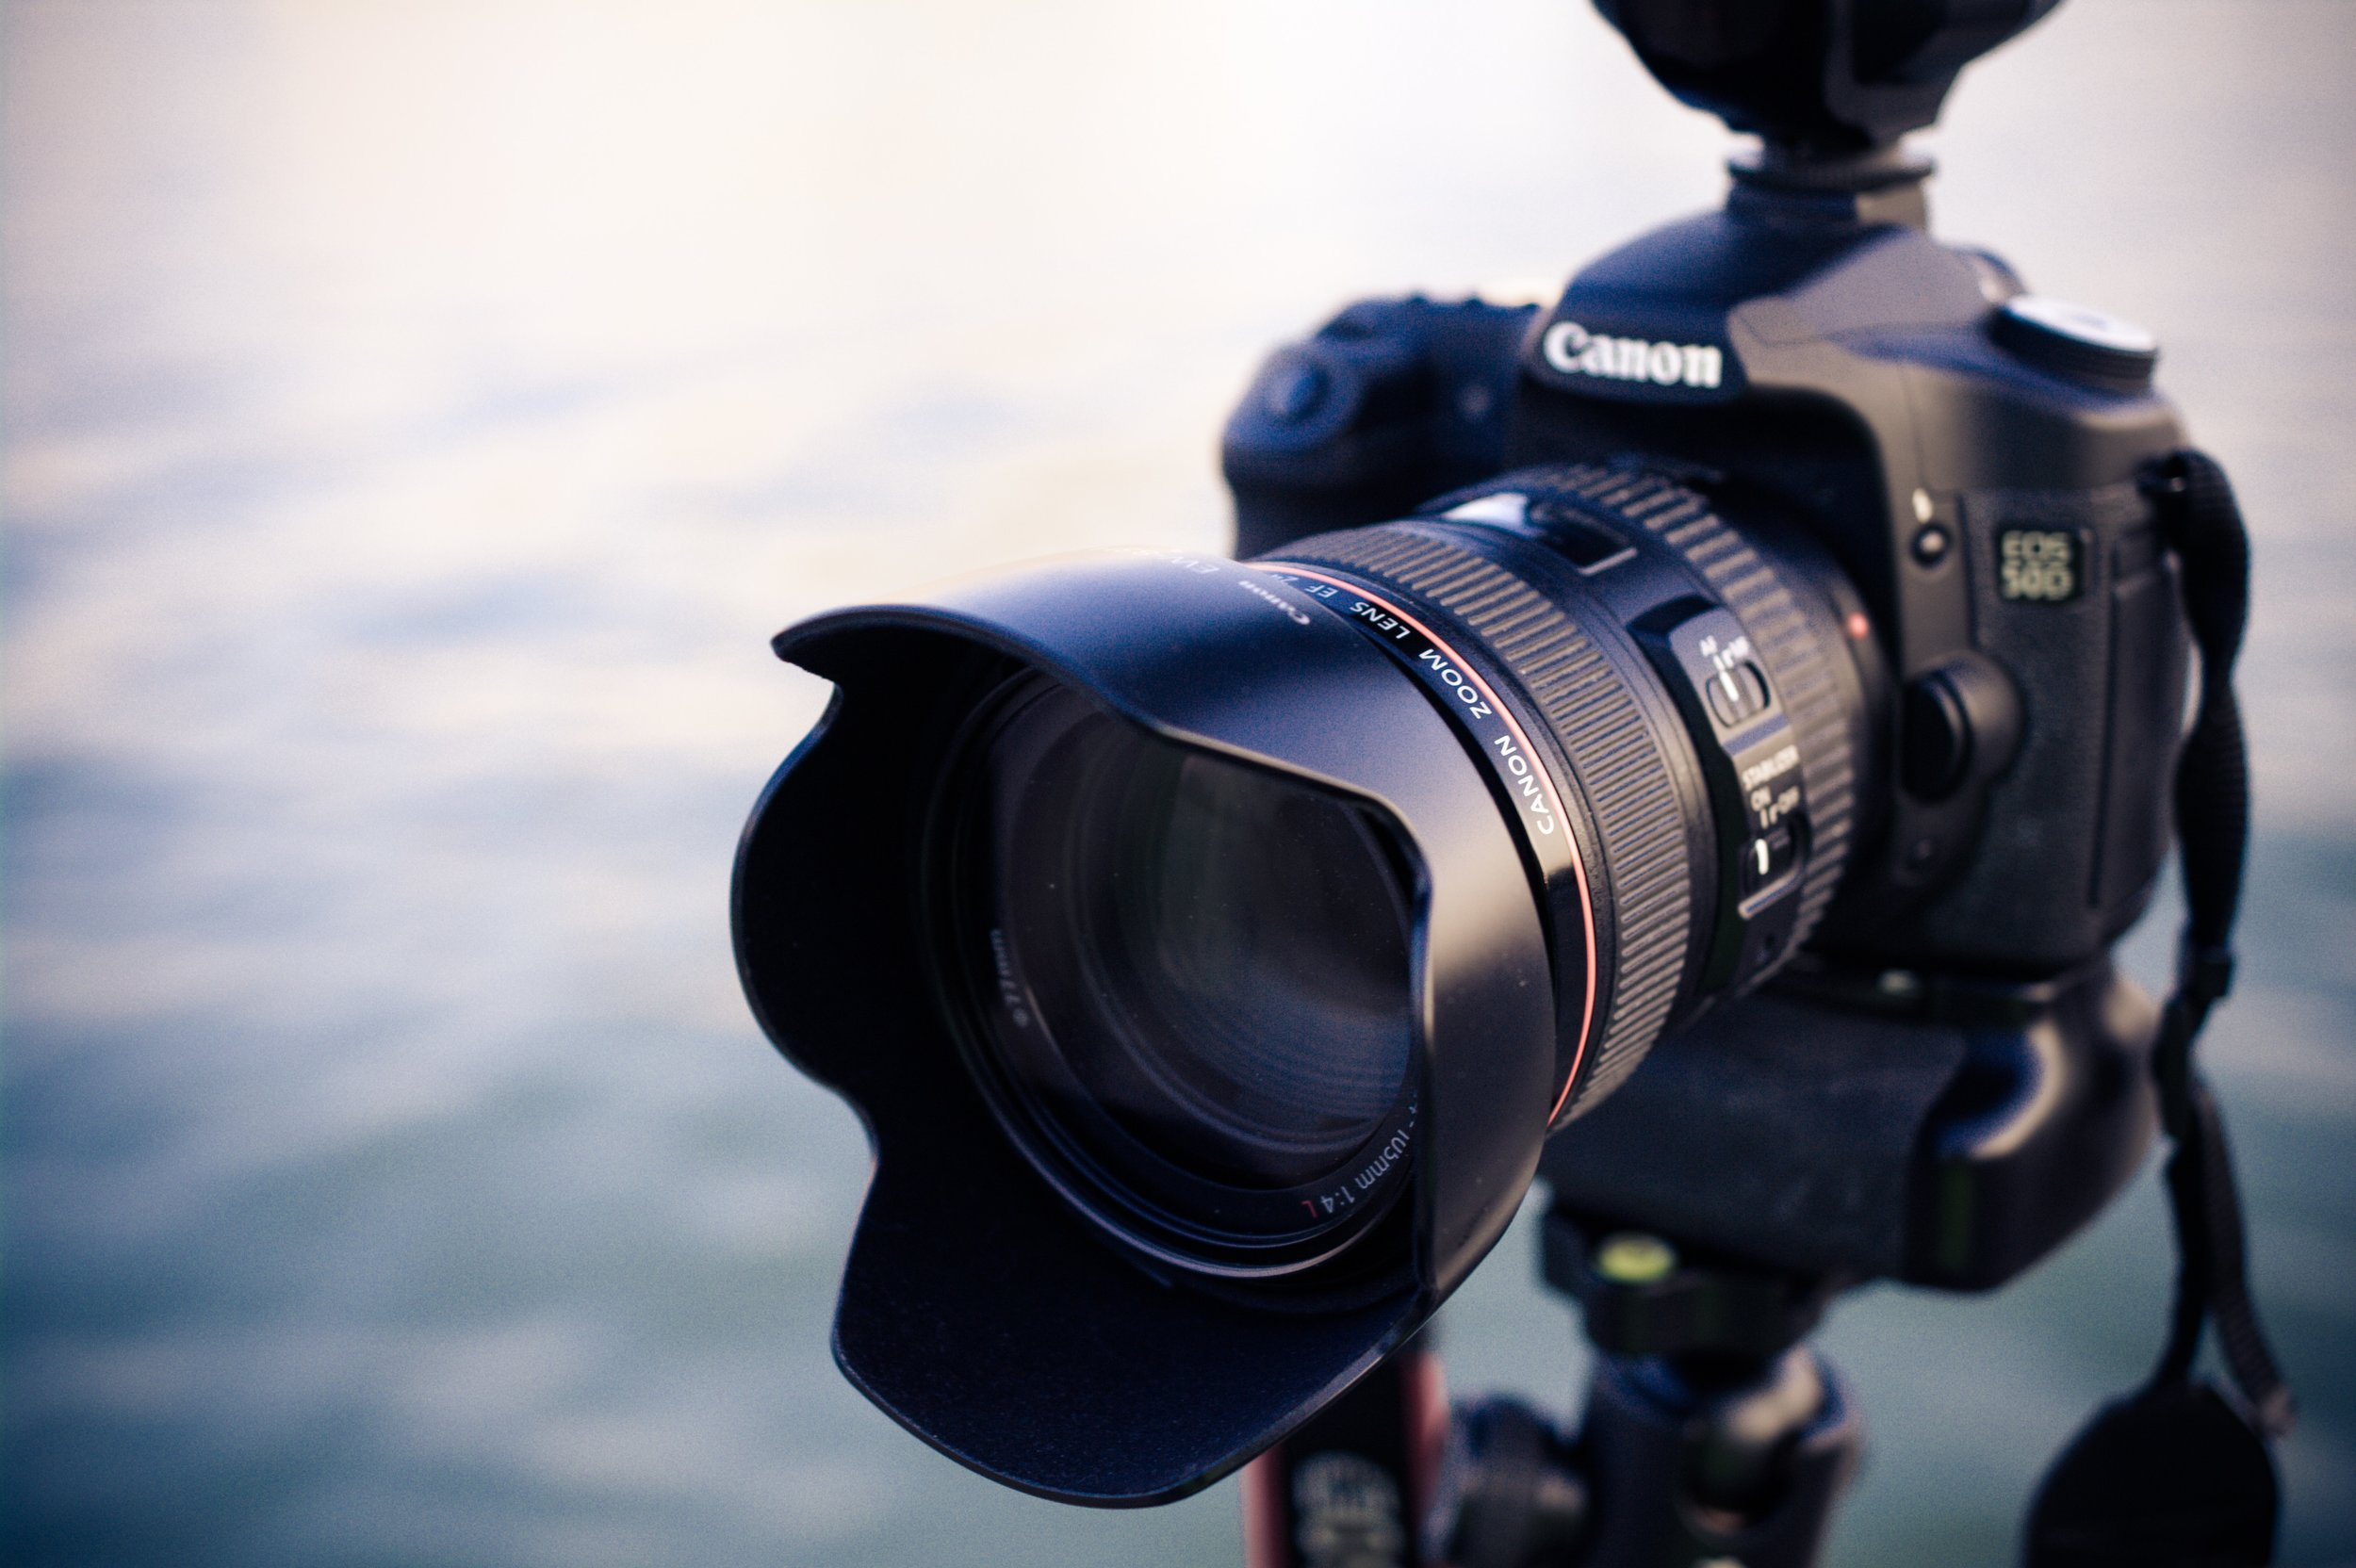 Fans of shooting video with a DSLR defer to Canon. The brand has an extensive line of cameras at varying price points to choose from. Photo credit: Alexandar Wang